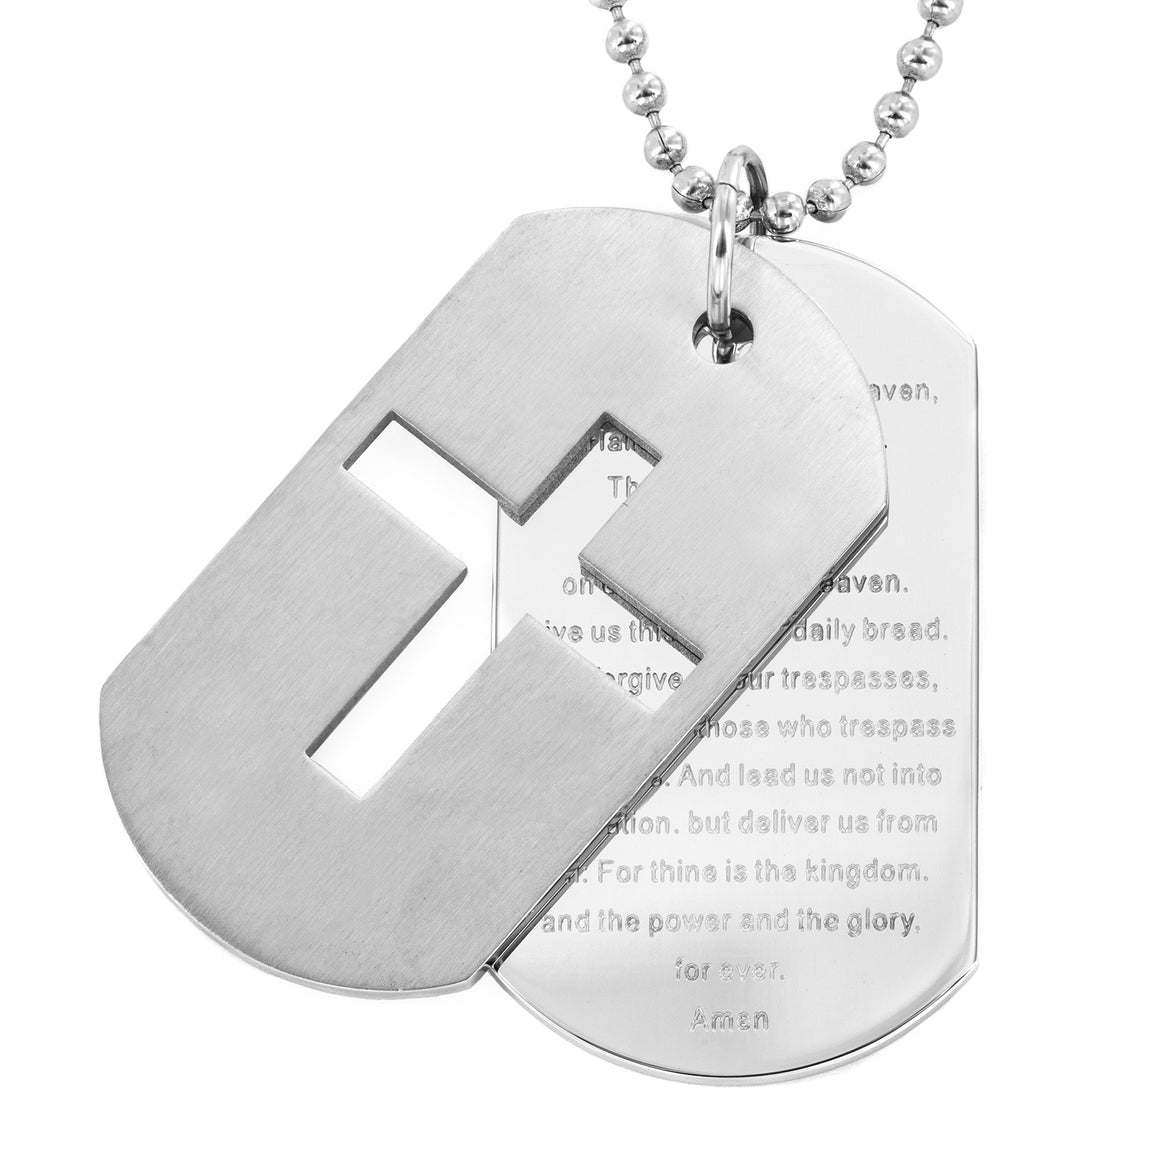 Crucible Men's Stainless Steel Cross and 'Lord's Prayer' Double Dog Tag Pendant